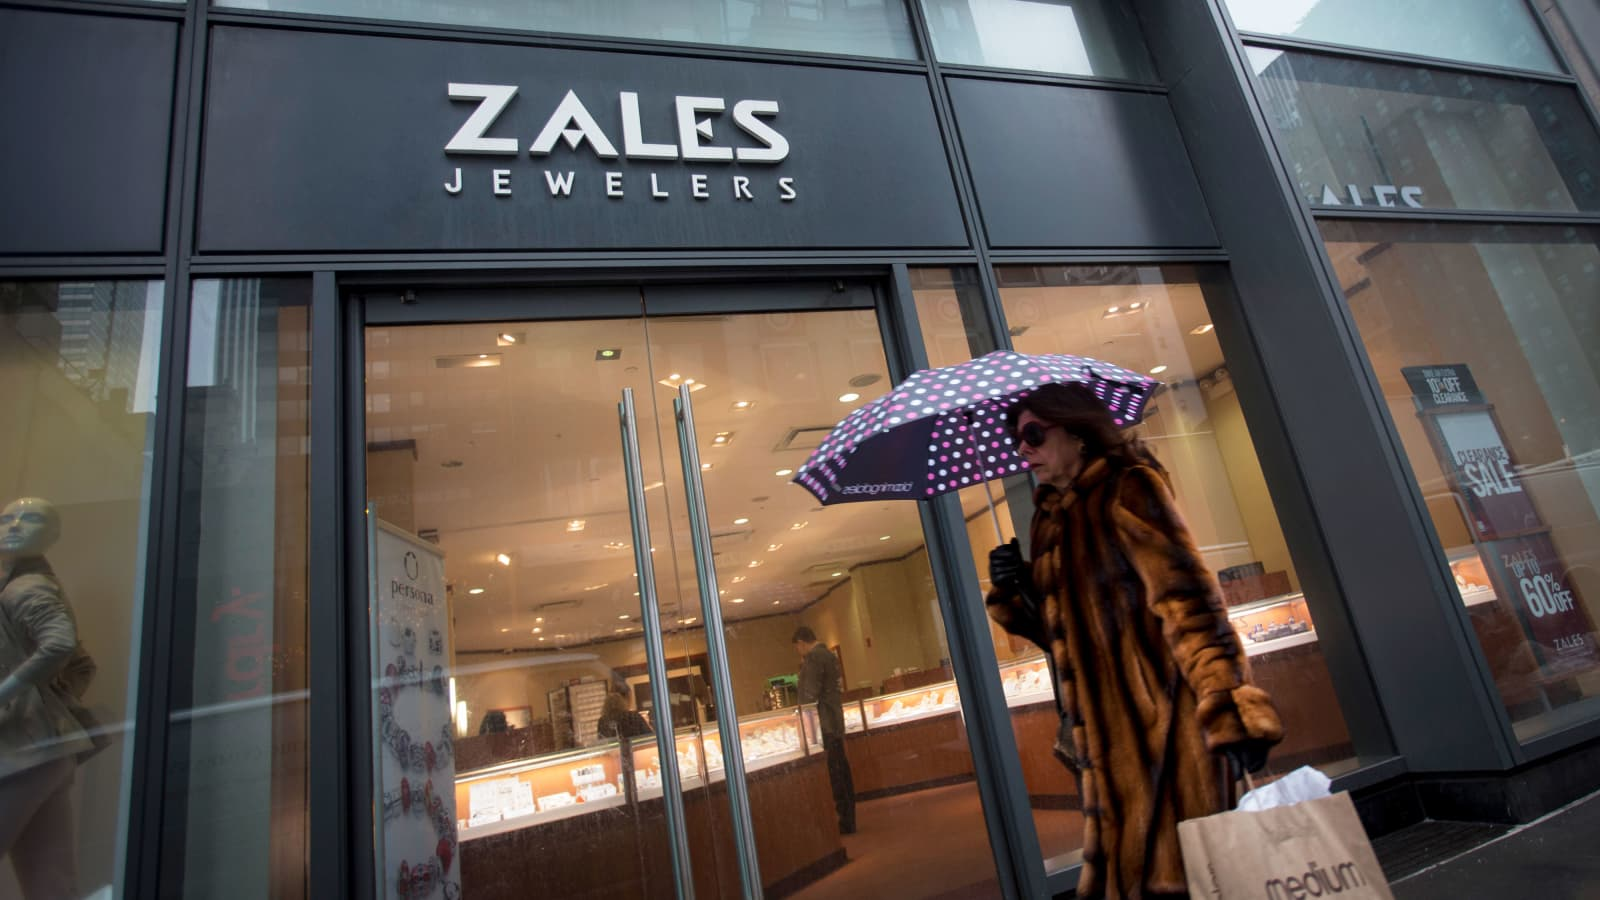 Owner Of Kay Zales And Jareds Expects To Close More Than 150 Stores